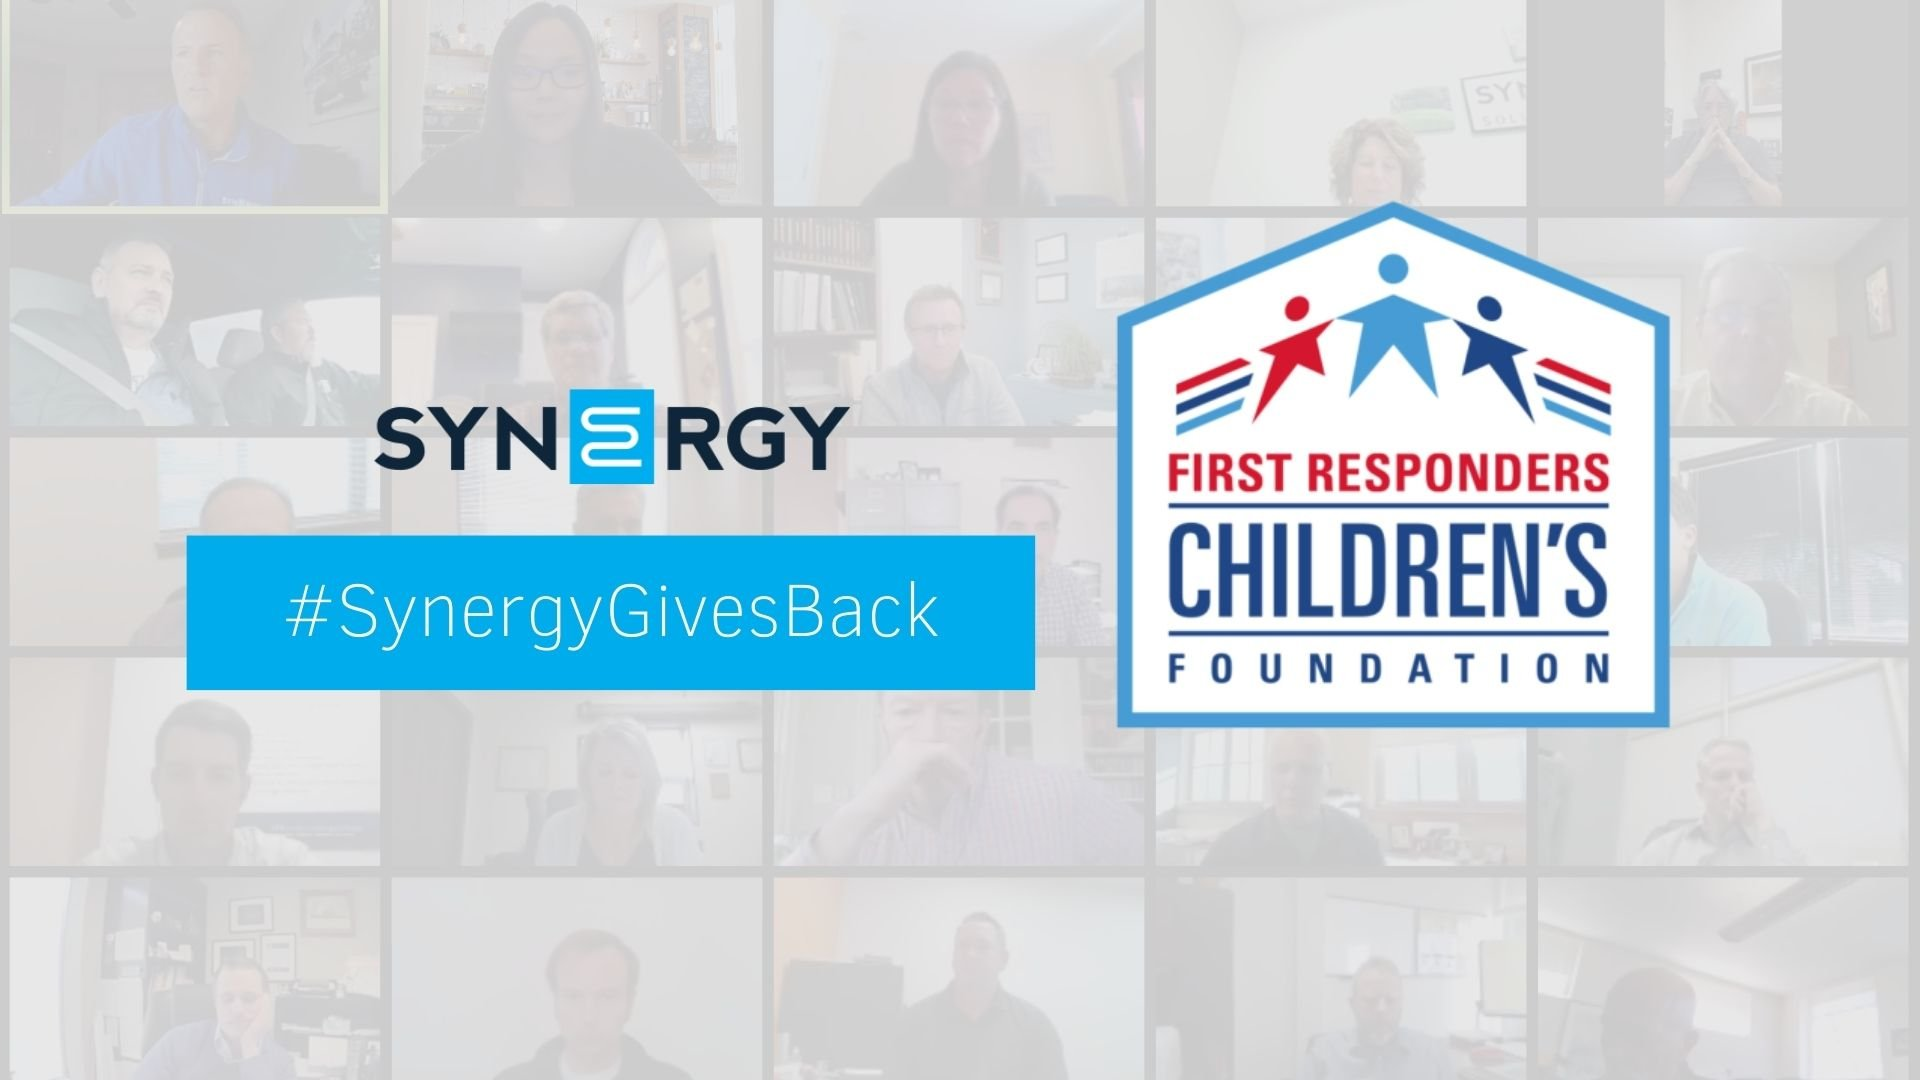 Synergy Raises Funds for First Responders Children's Foundation